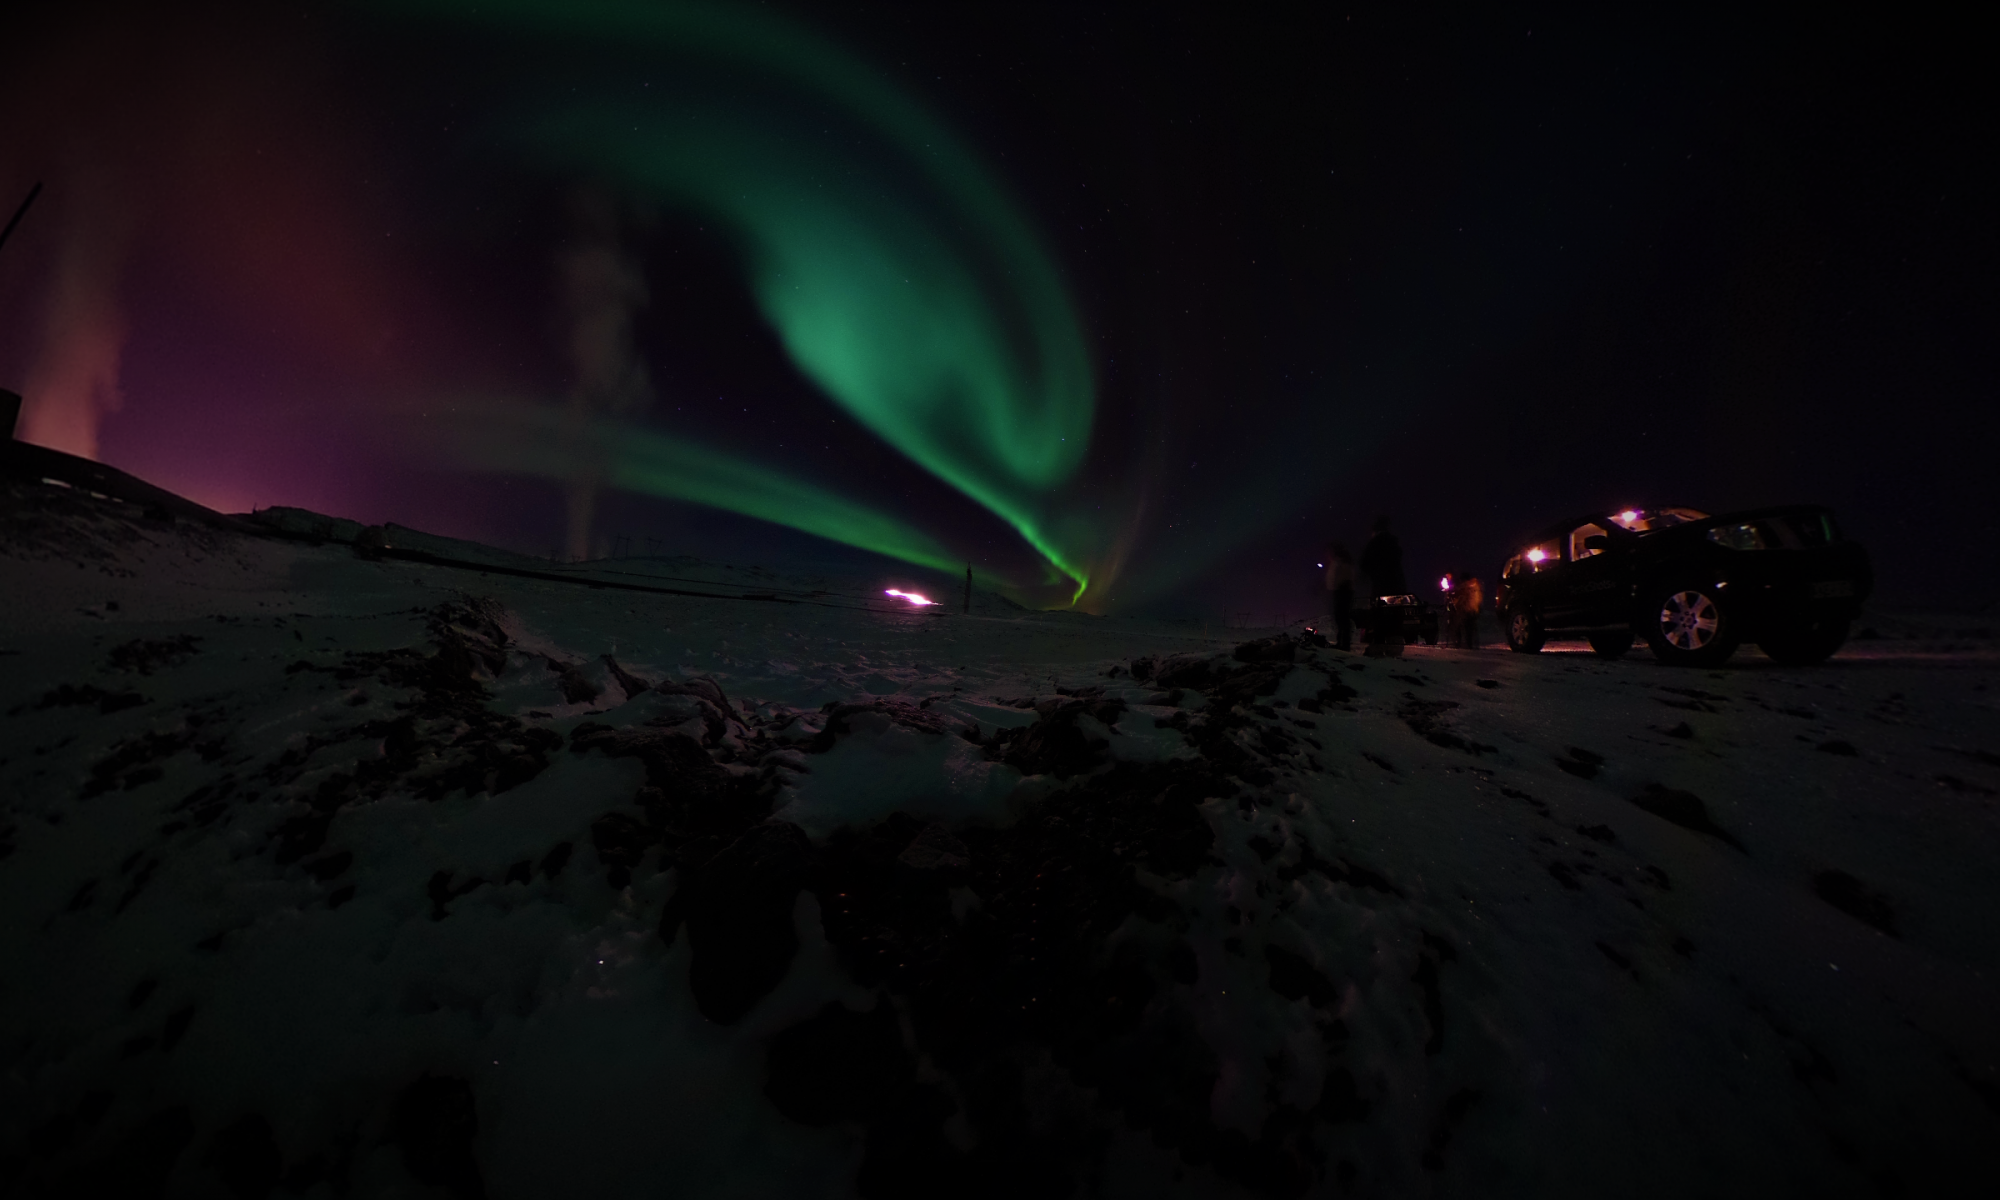 Aurora Borealis - Iceland Geothermal Plant Northern Lights Tour